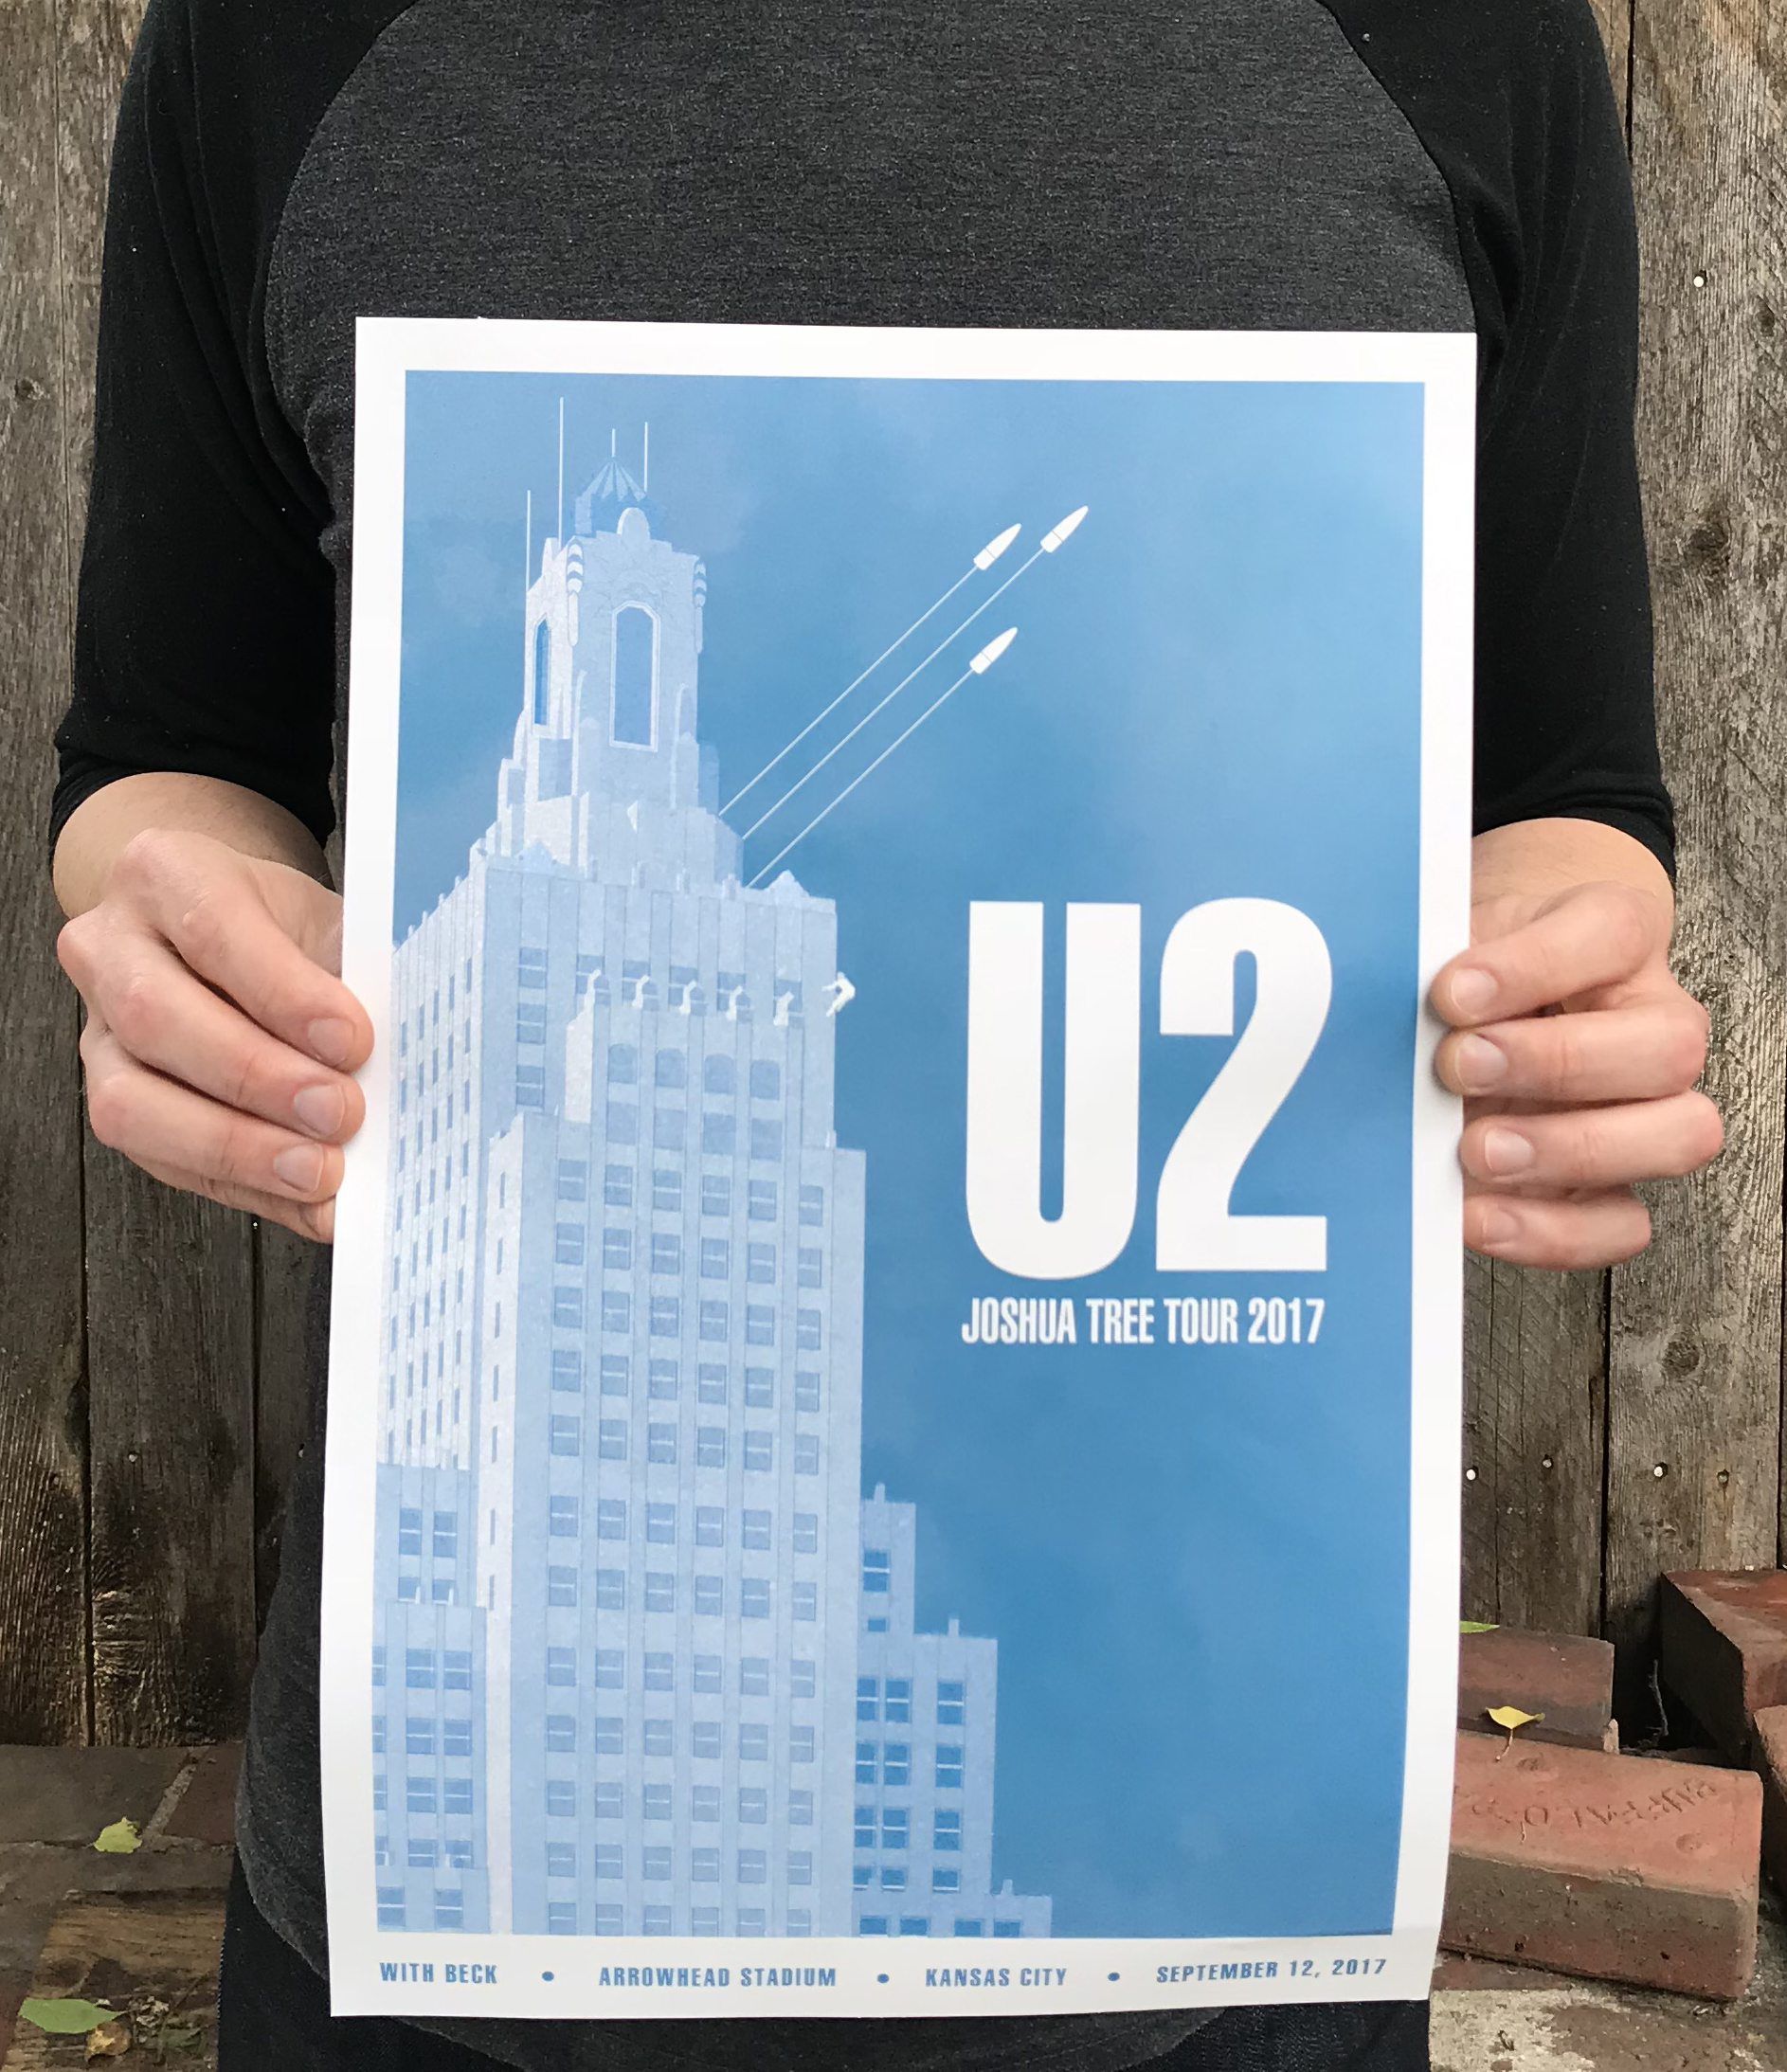 u2-kyle-dolan-design-illustration-holding-poster.jpg